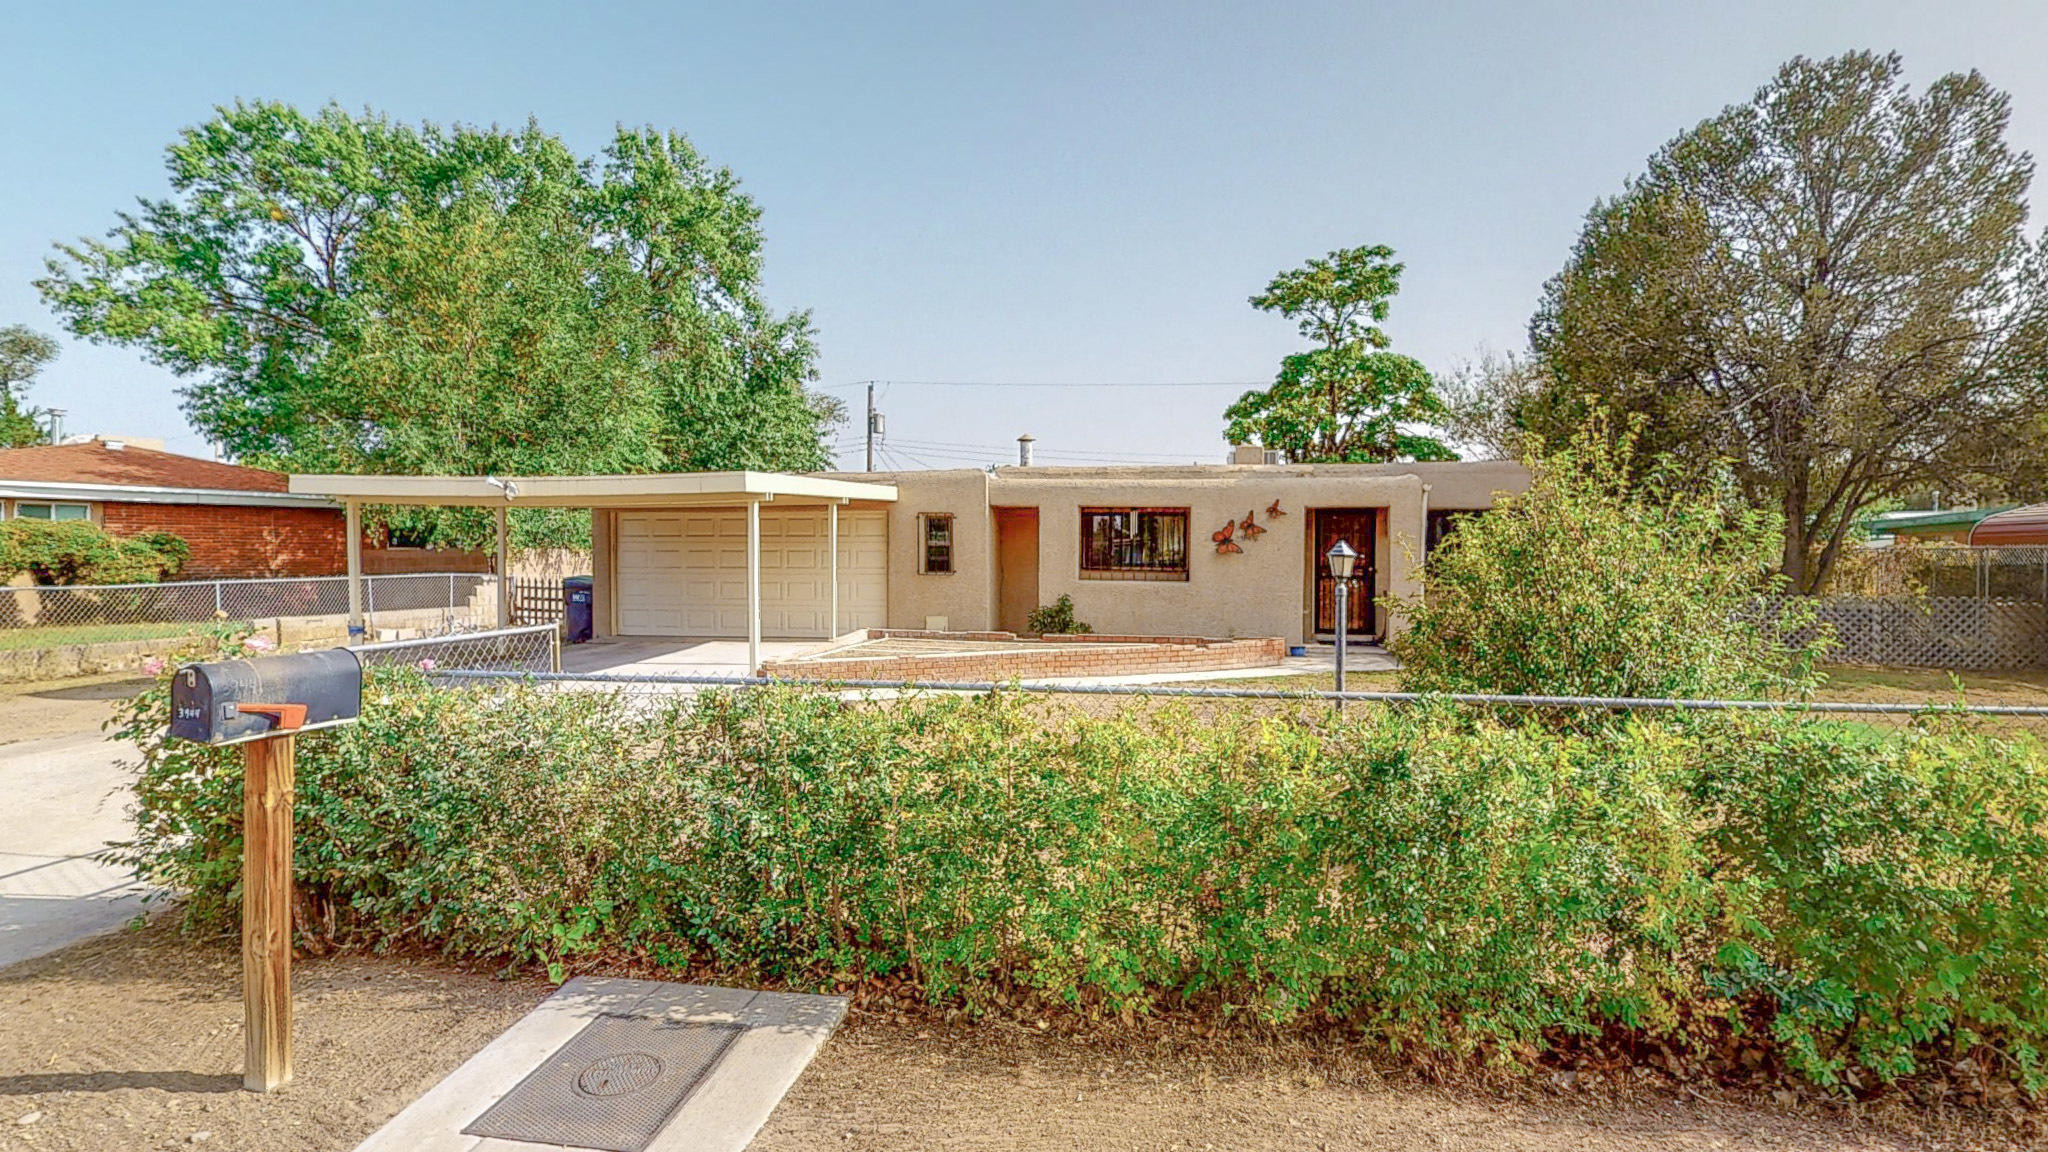 Welcome to your new home in Adobe Acres! Pueblo style home sits on .29 acres with irrigation well.  Remodeled kitchen and bathrooms.  Partial Garage could be changed back to a 2 car garage.  Walking distance to Adobe acres Elementary and park.